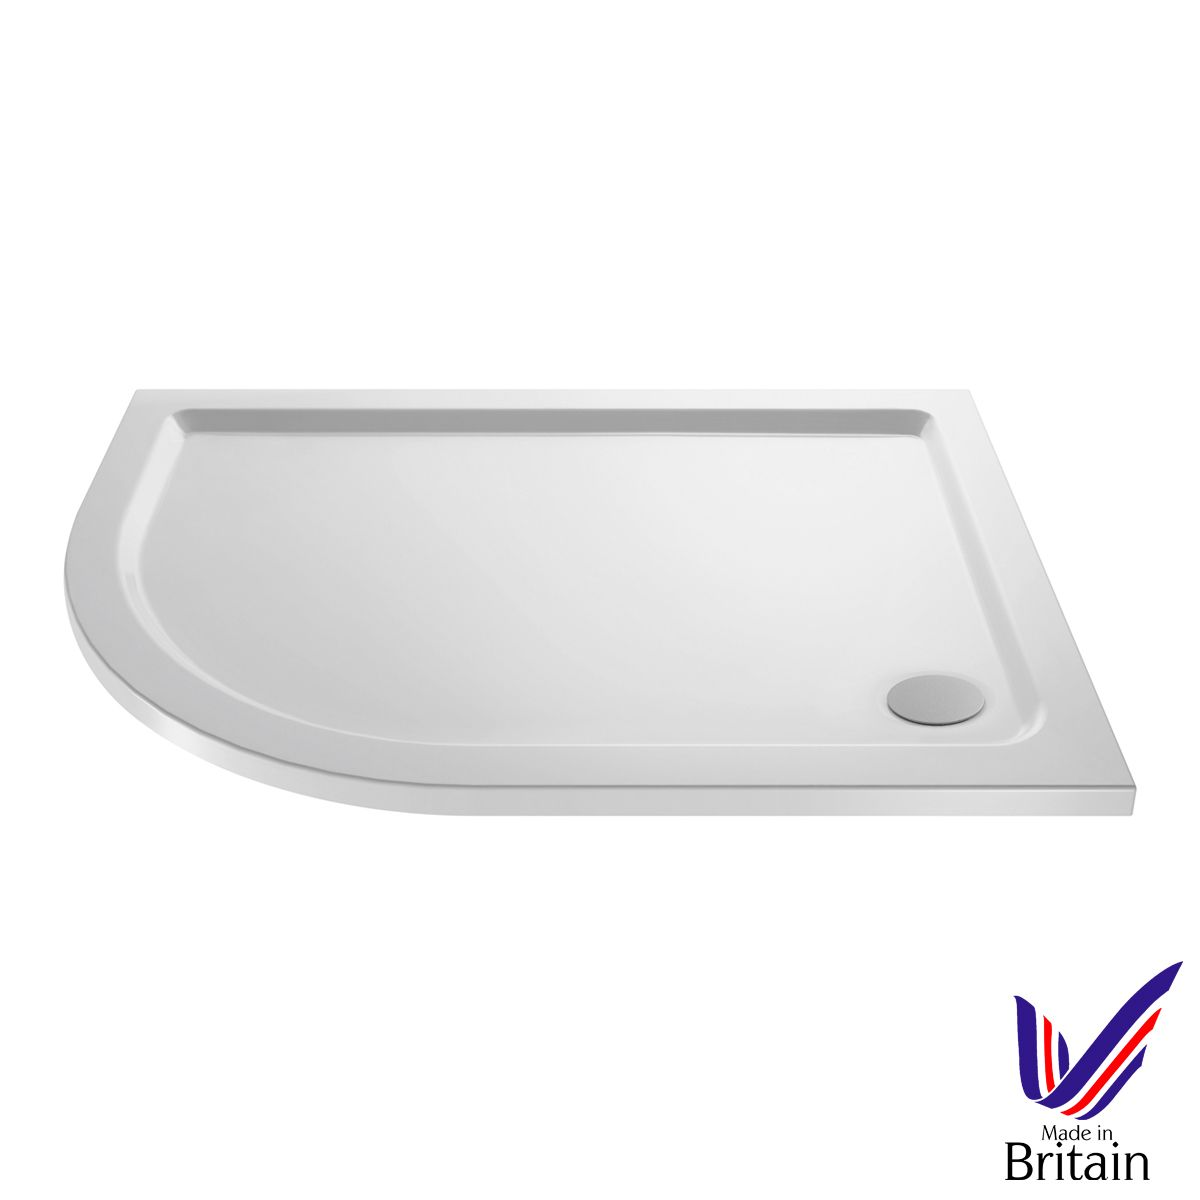 1200 x 900 Shower Tray Offset Quadrant Low Profile Left Hand by Pearlstone